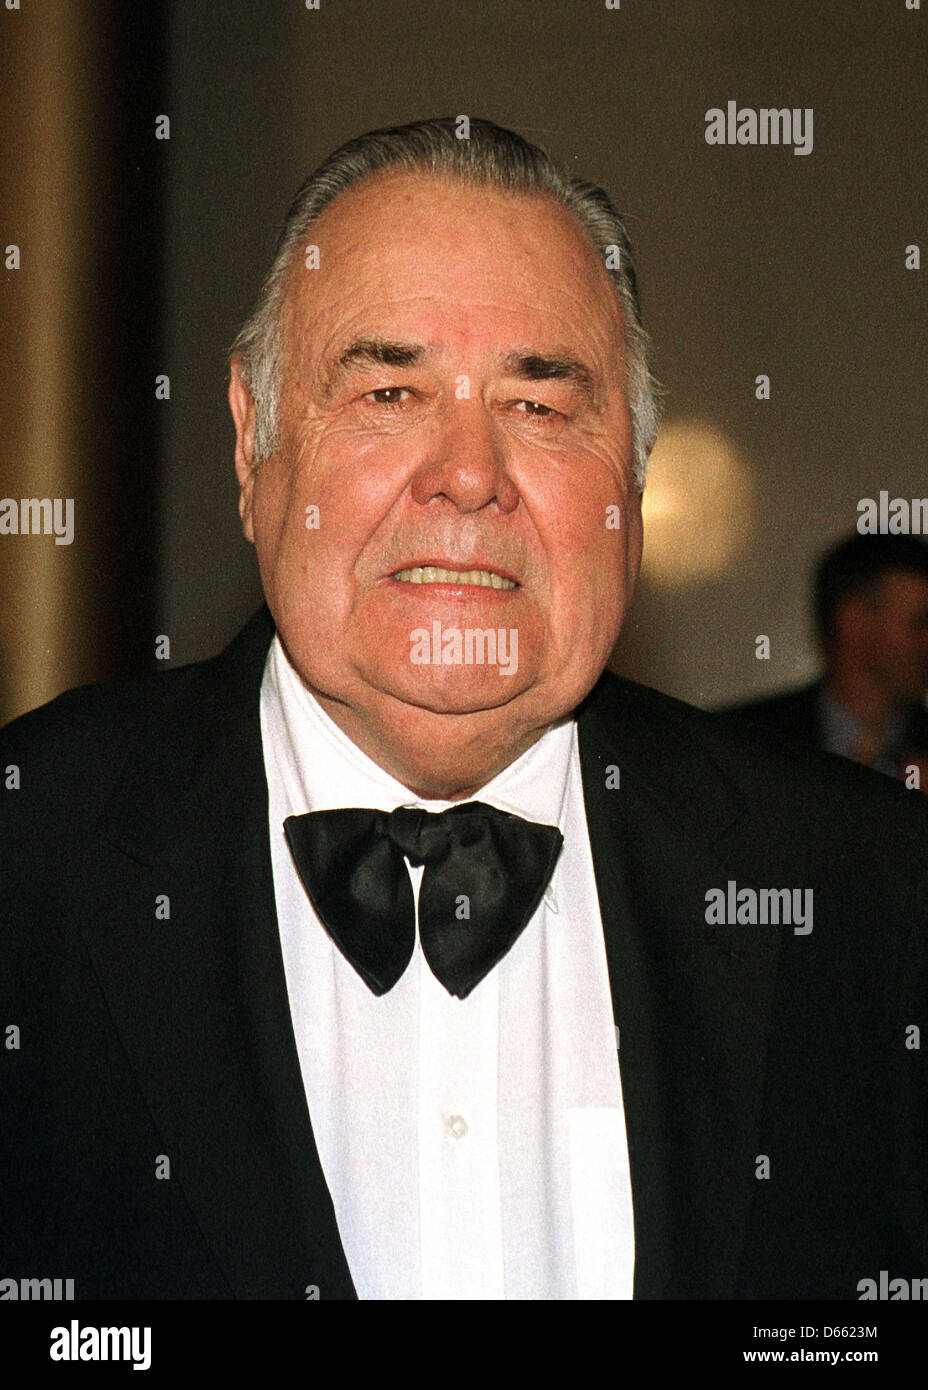 Jonathan Winters arrives at the John F. Kennedy Center for the Performing Arts in Washington, D.C. to accept the - Stock Image